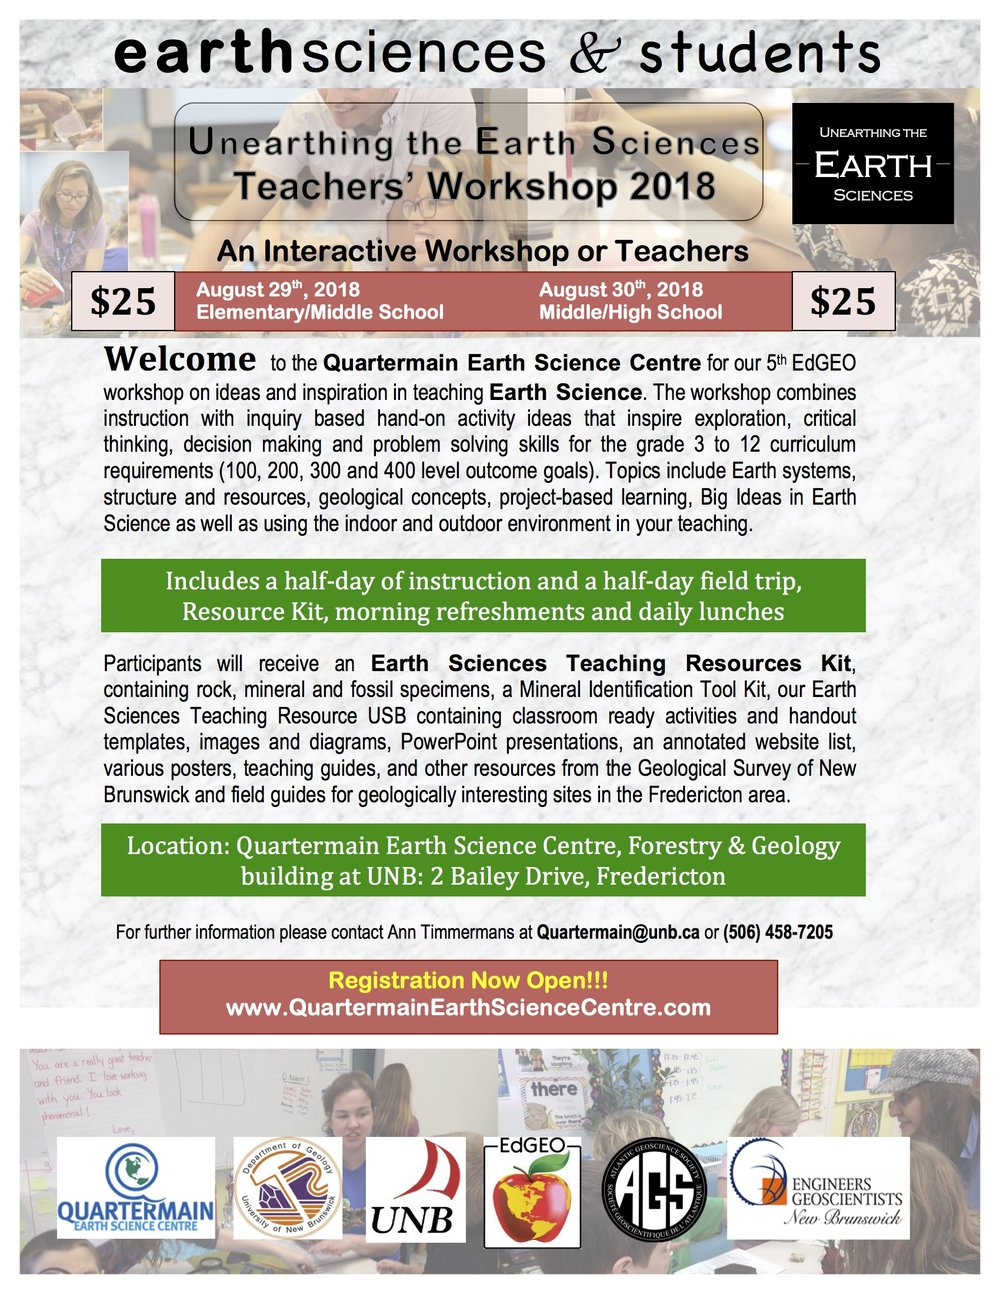 Teachers Workshop 2018 Registration Brochure page 1of3.jpg